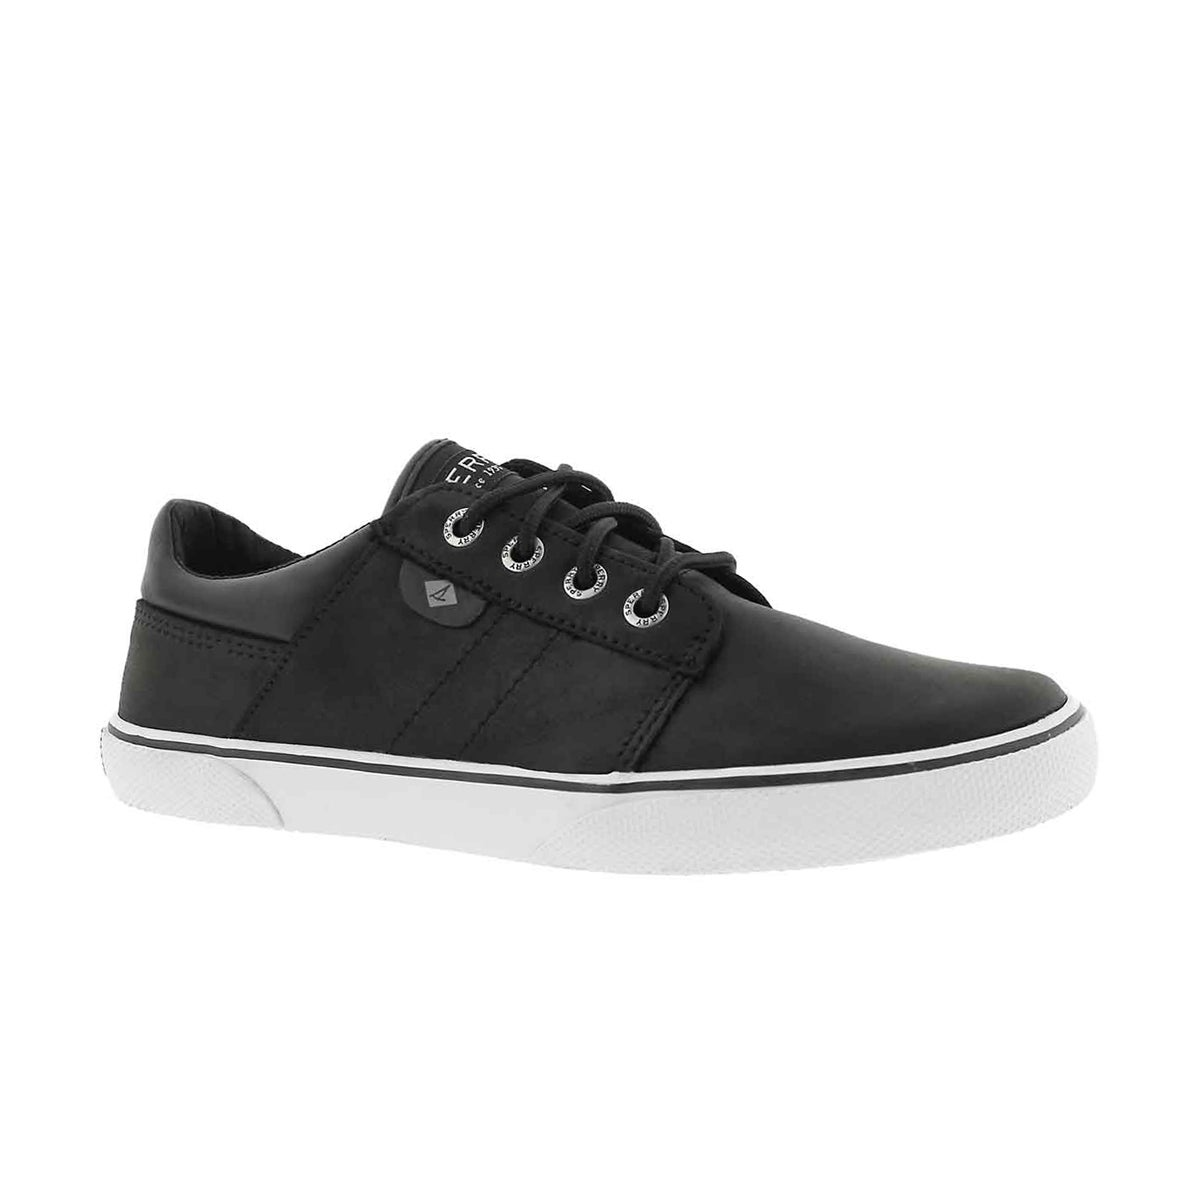 Boys' OLLIE black lace up sneakers